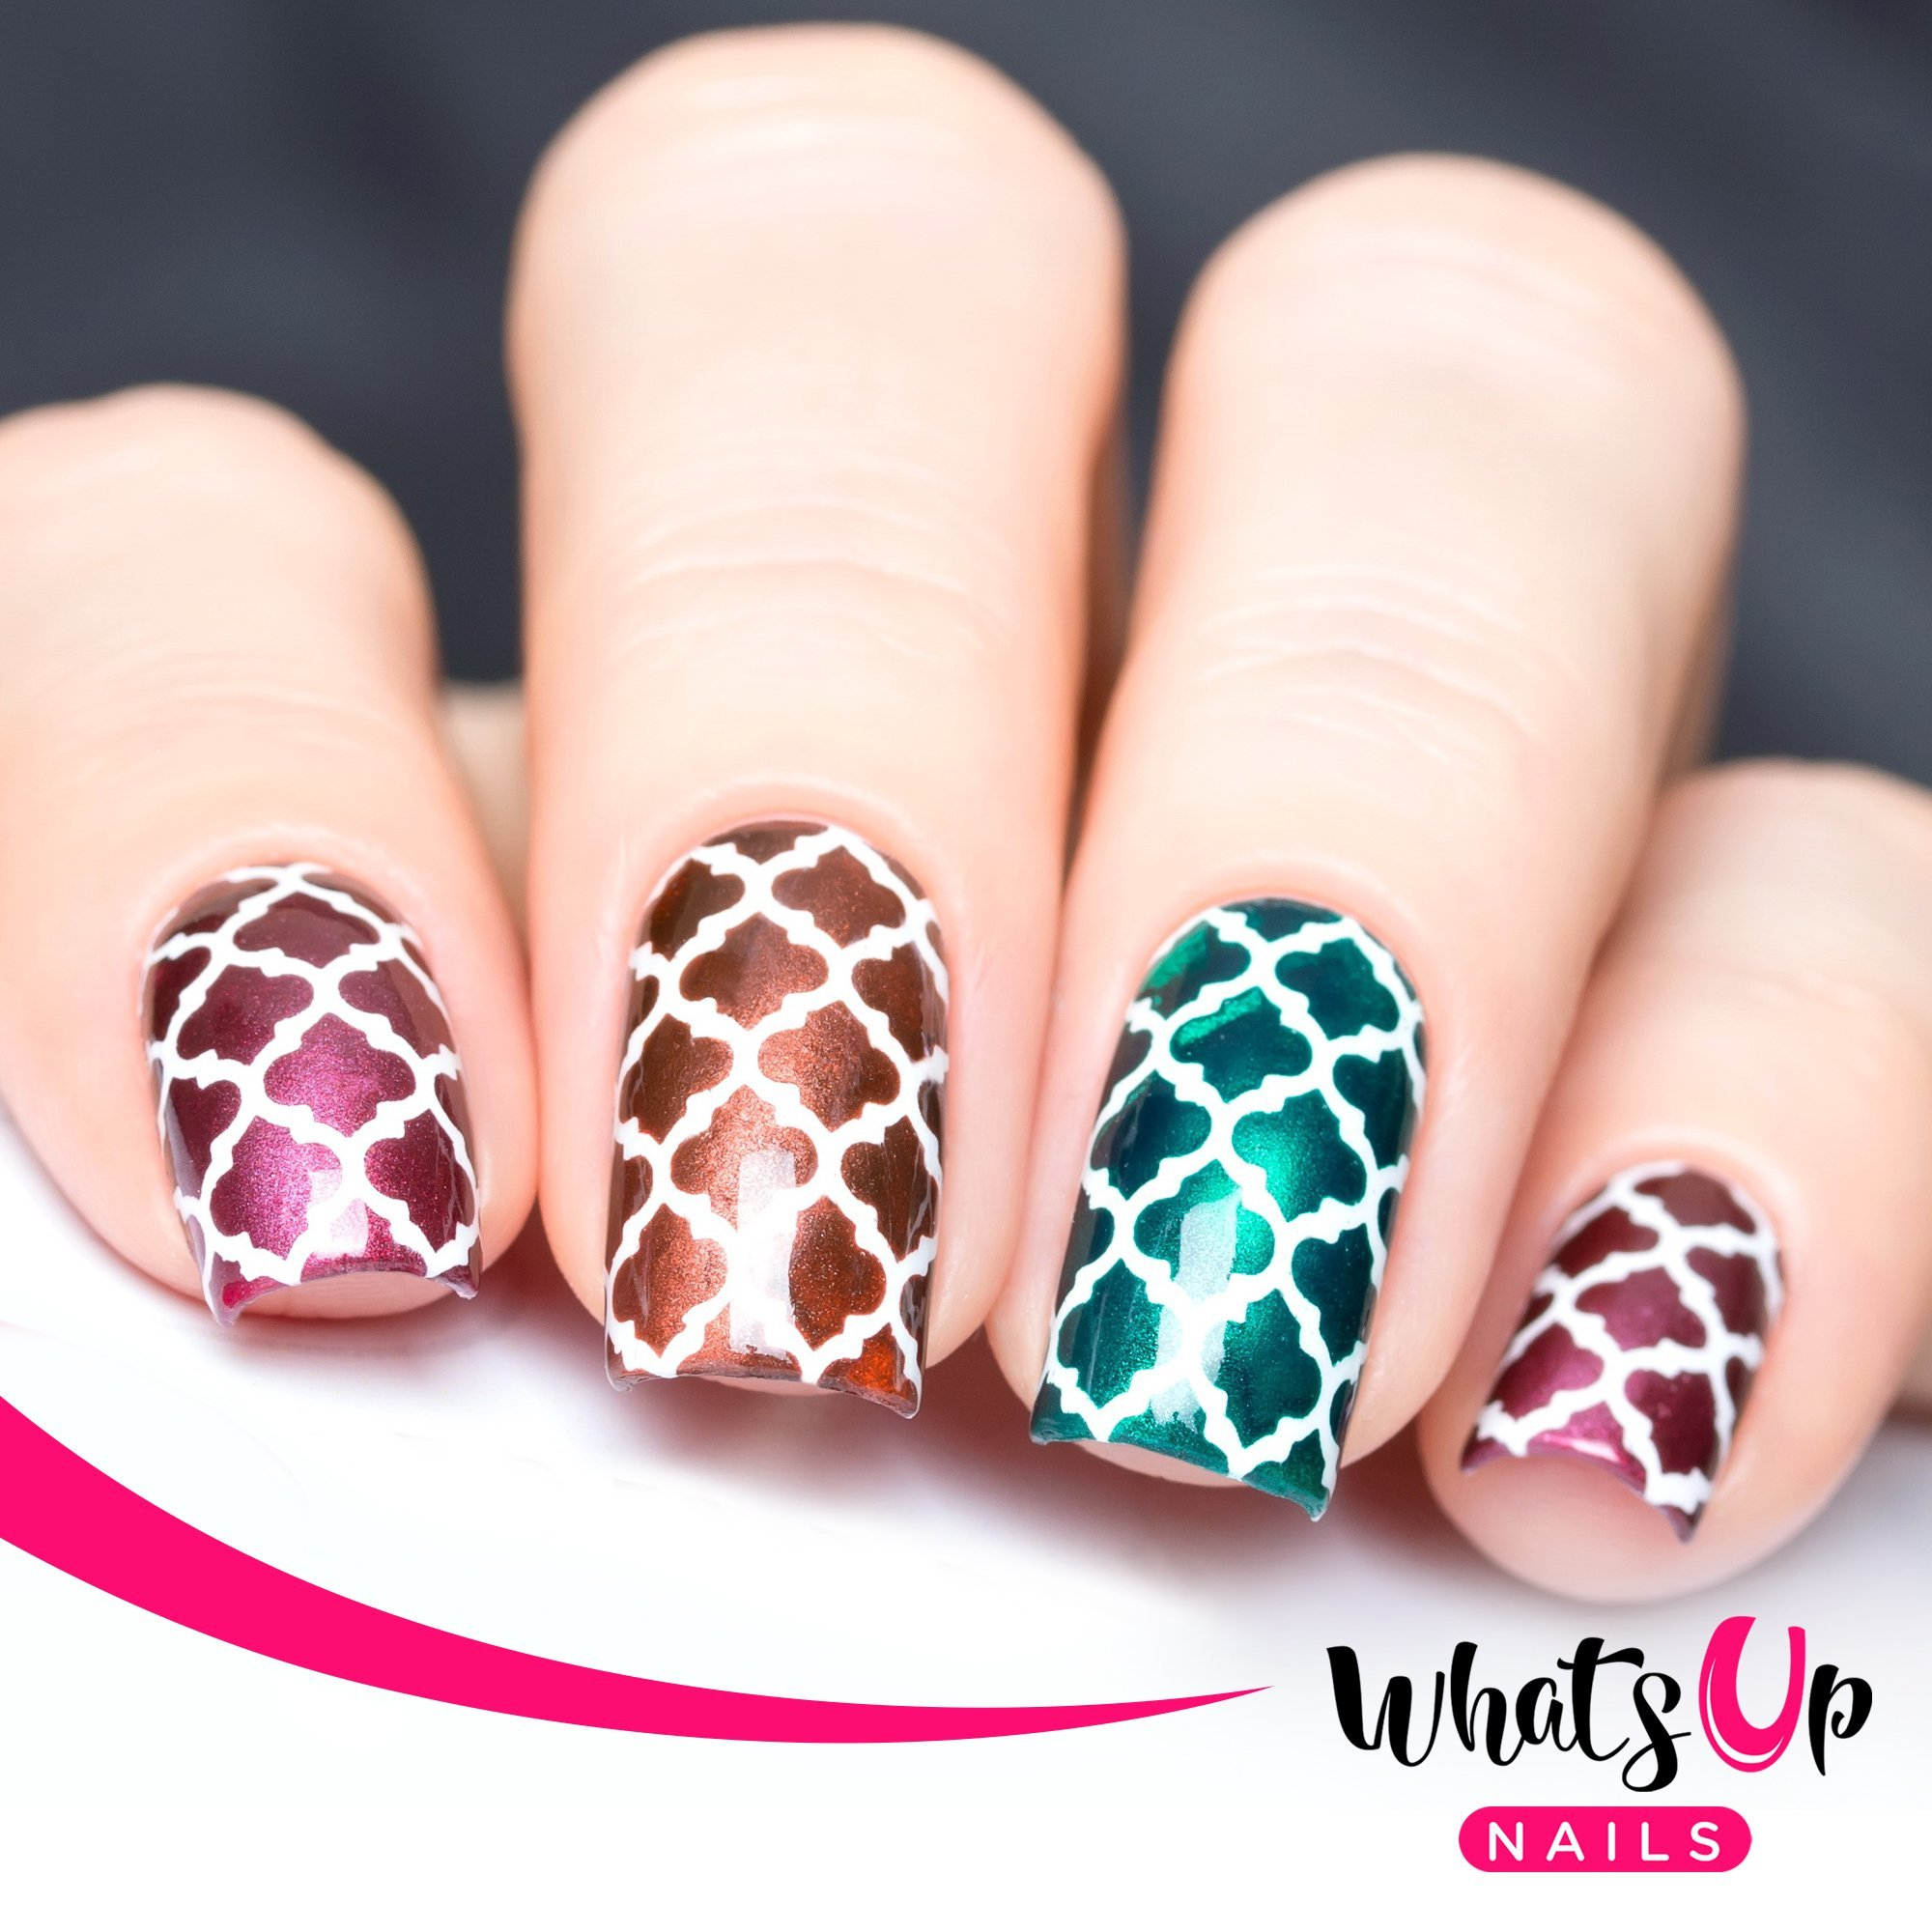 whats nails - x-pattern